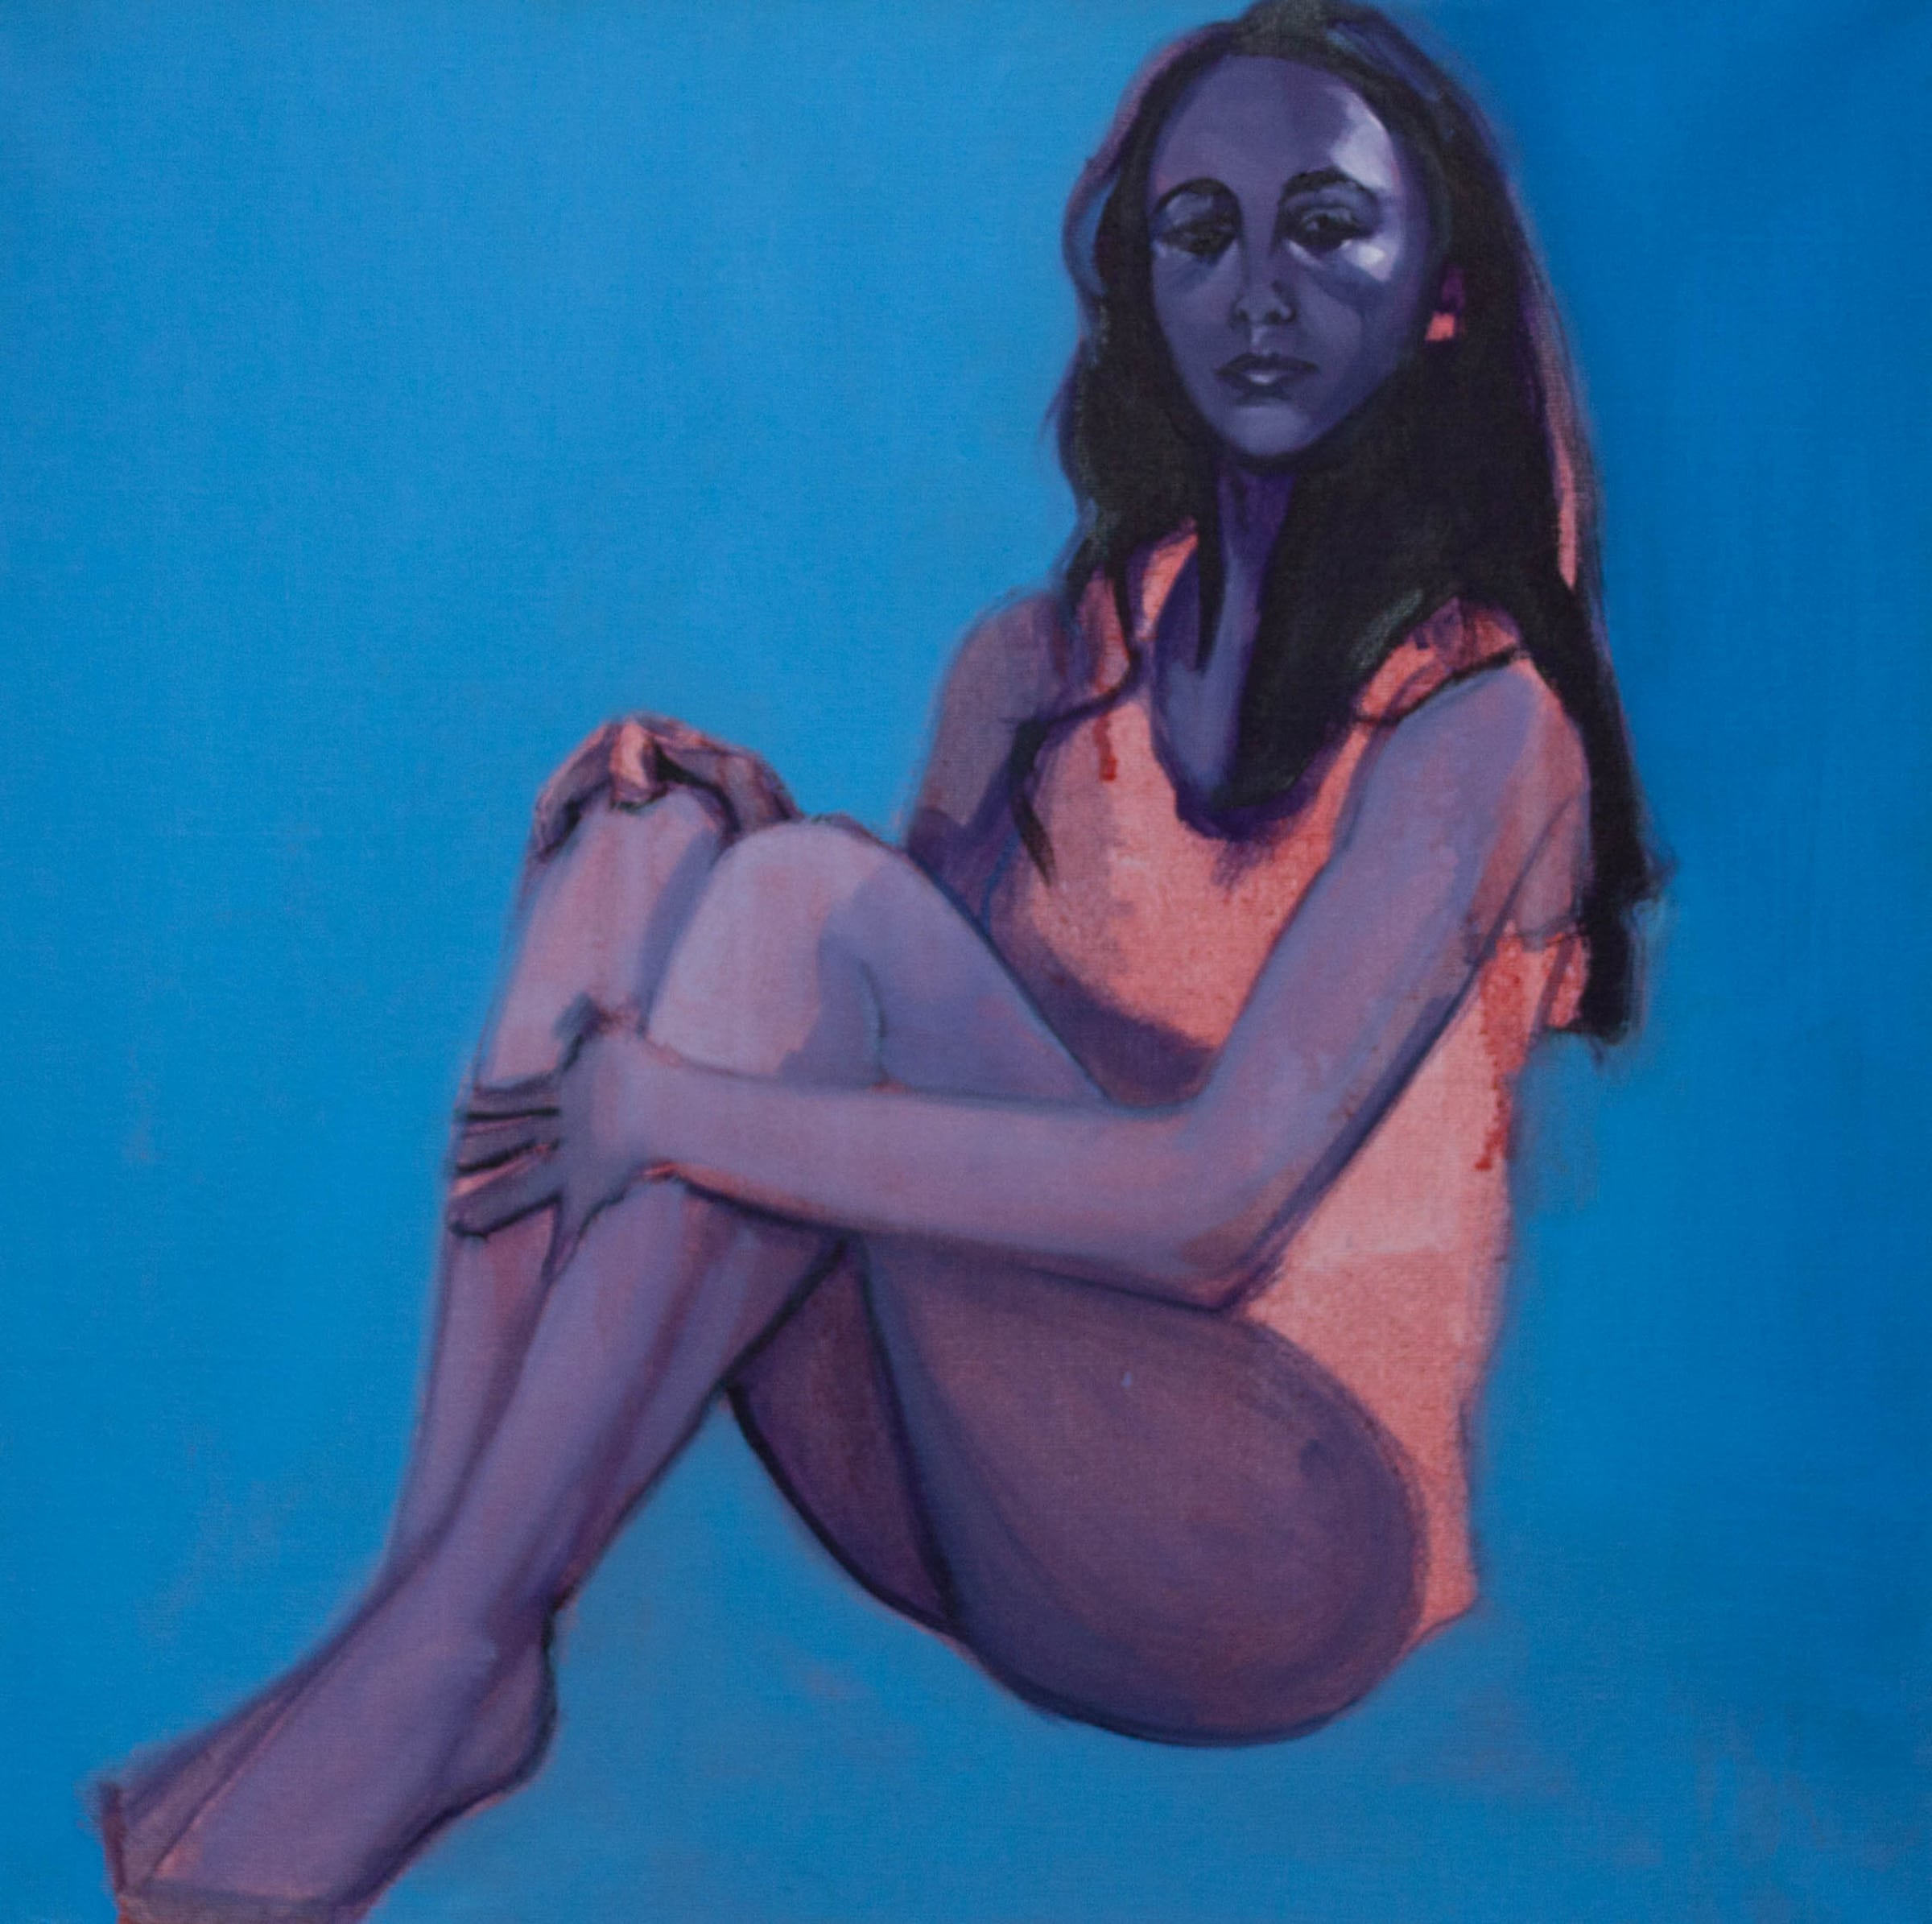 <span class=&#34;link fancybox-details-link&#34;><a href=&#34;/artists/49-sharon-moses/works/1170-sharon-moses-demon-2018/&#34;>View Detail Page</a></span><div class=&#34;artist&#34;><strong>Sharon Moses</strong></div> <div class=&#34;title&#34;><em>Demon </em>, 2018</div> <div class=&#34;medium&#34;>Oil On Canvas</div> <div class=&#34;dimensions&#34;>45cm x 45cm x 45cm</div><div class=&#34;price&#34;>R2,900.00</div>